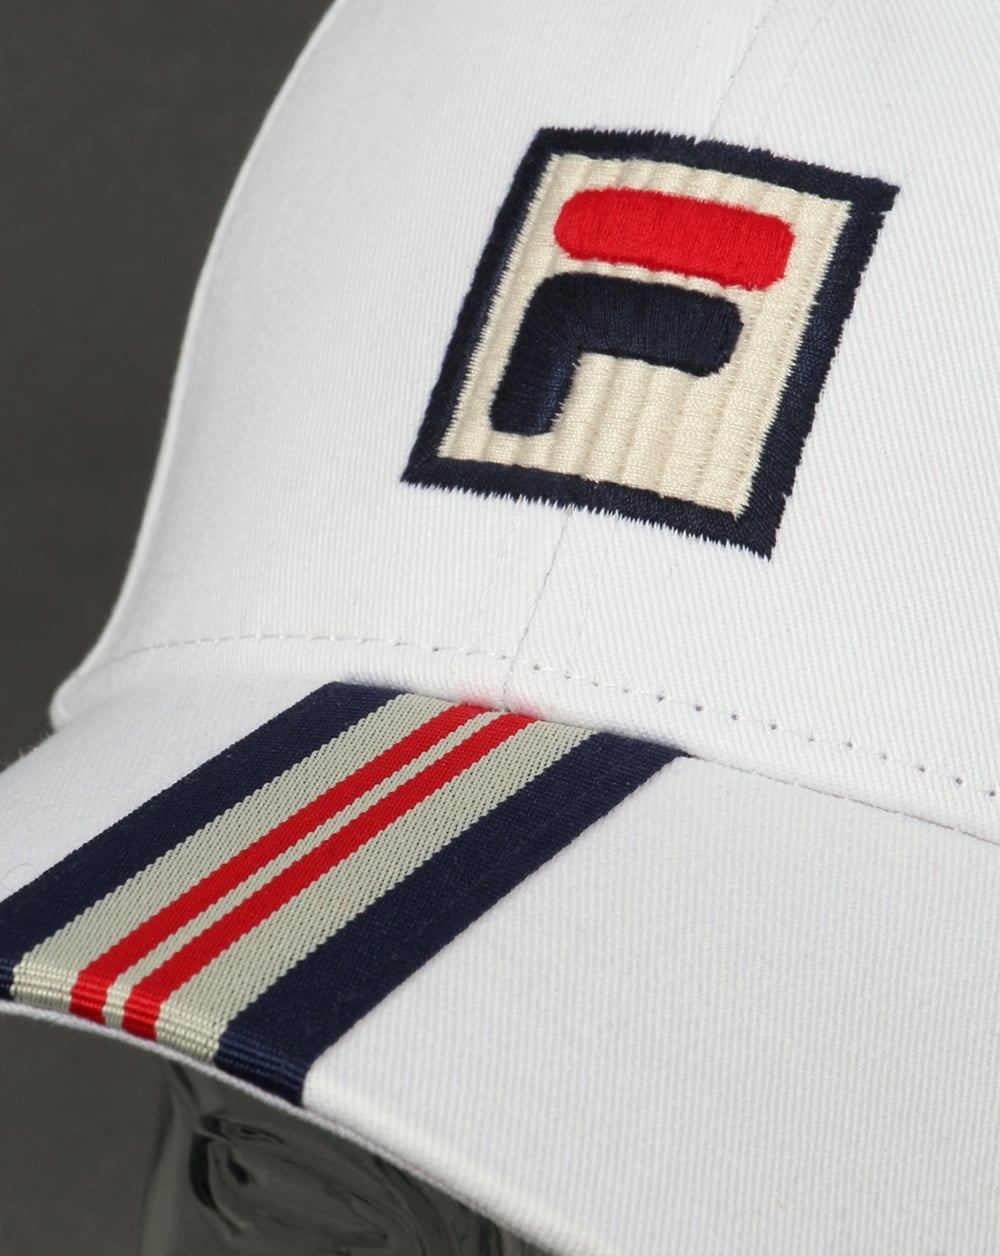 807d5414cd18d5 Fila Vintage Walker Baseball Cap White - fila baseball cap, white